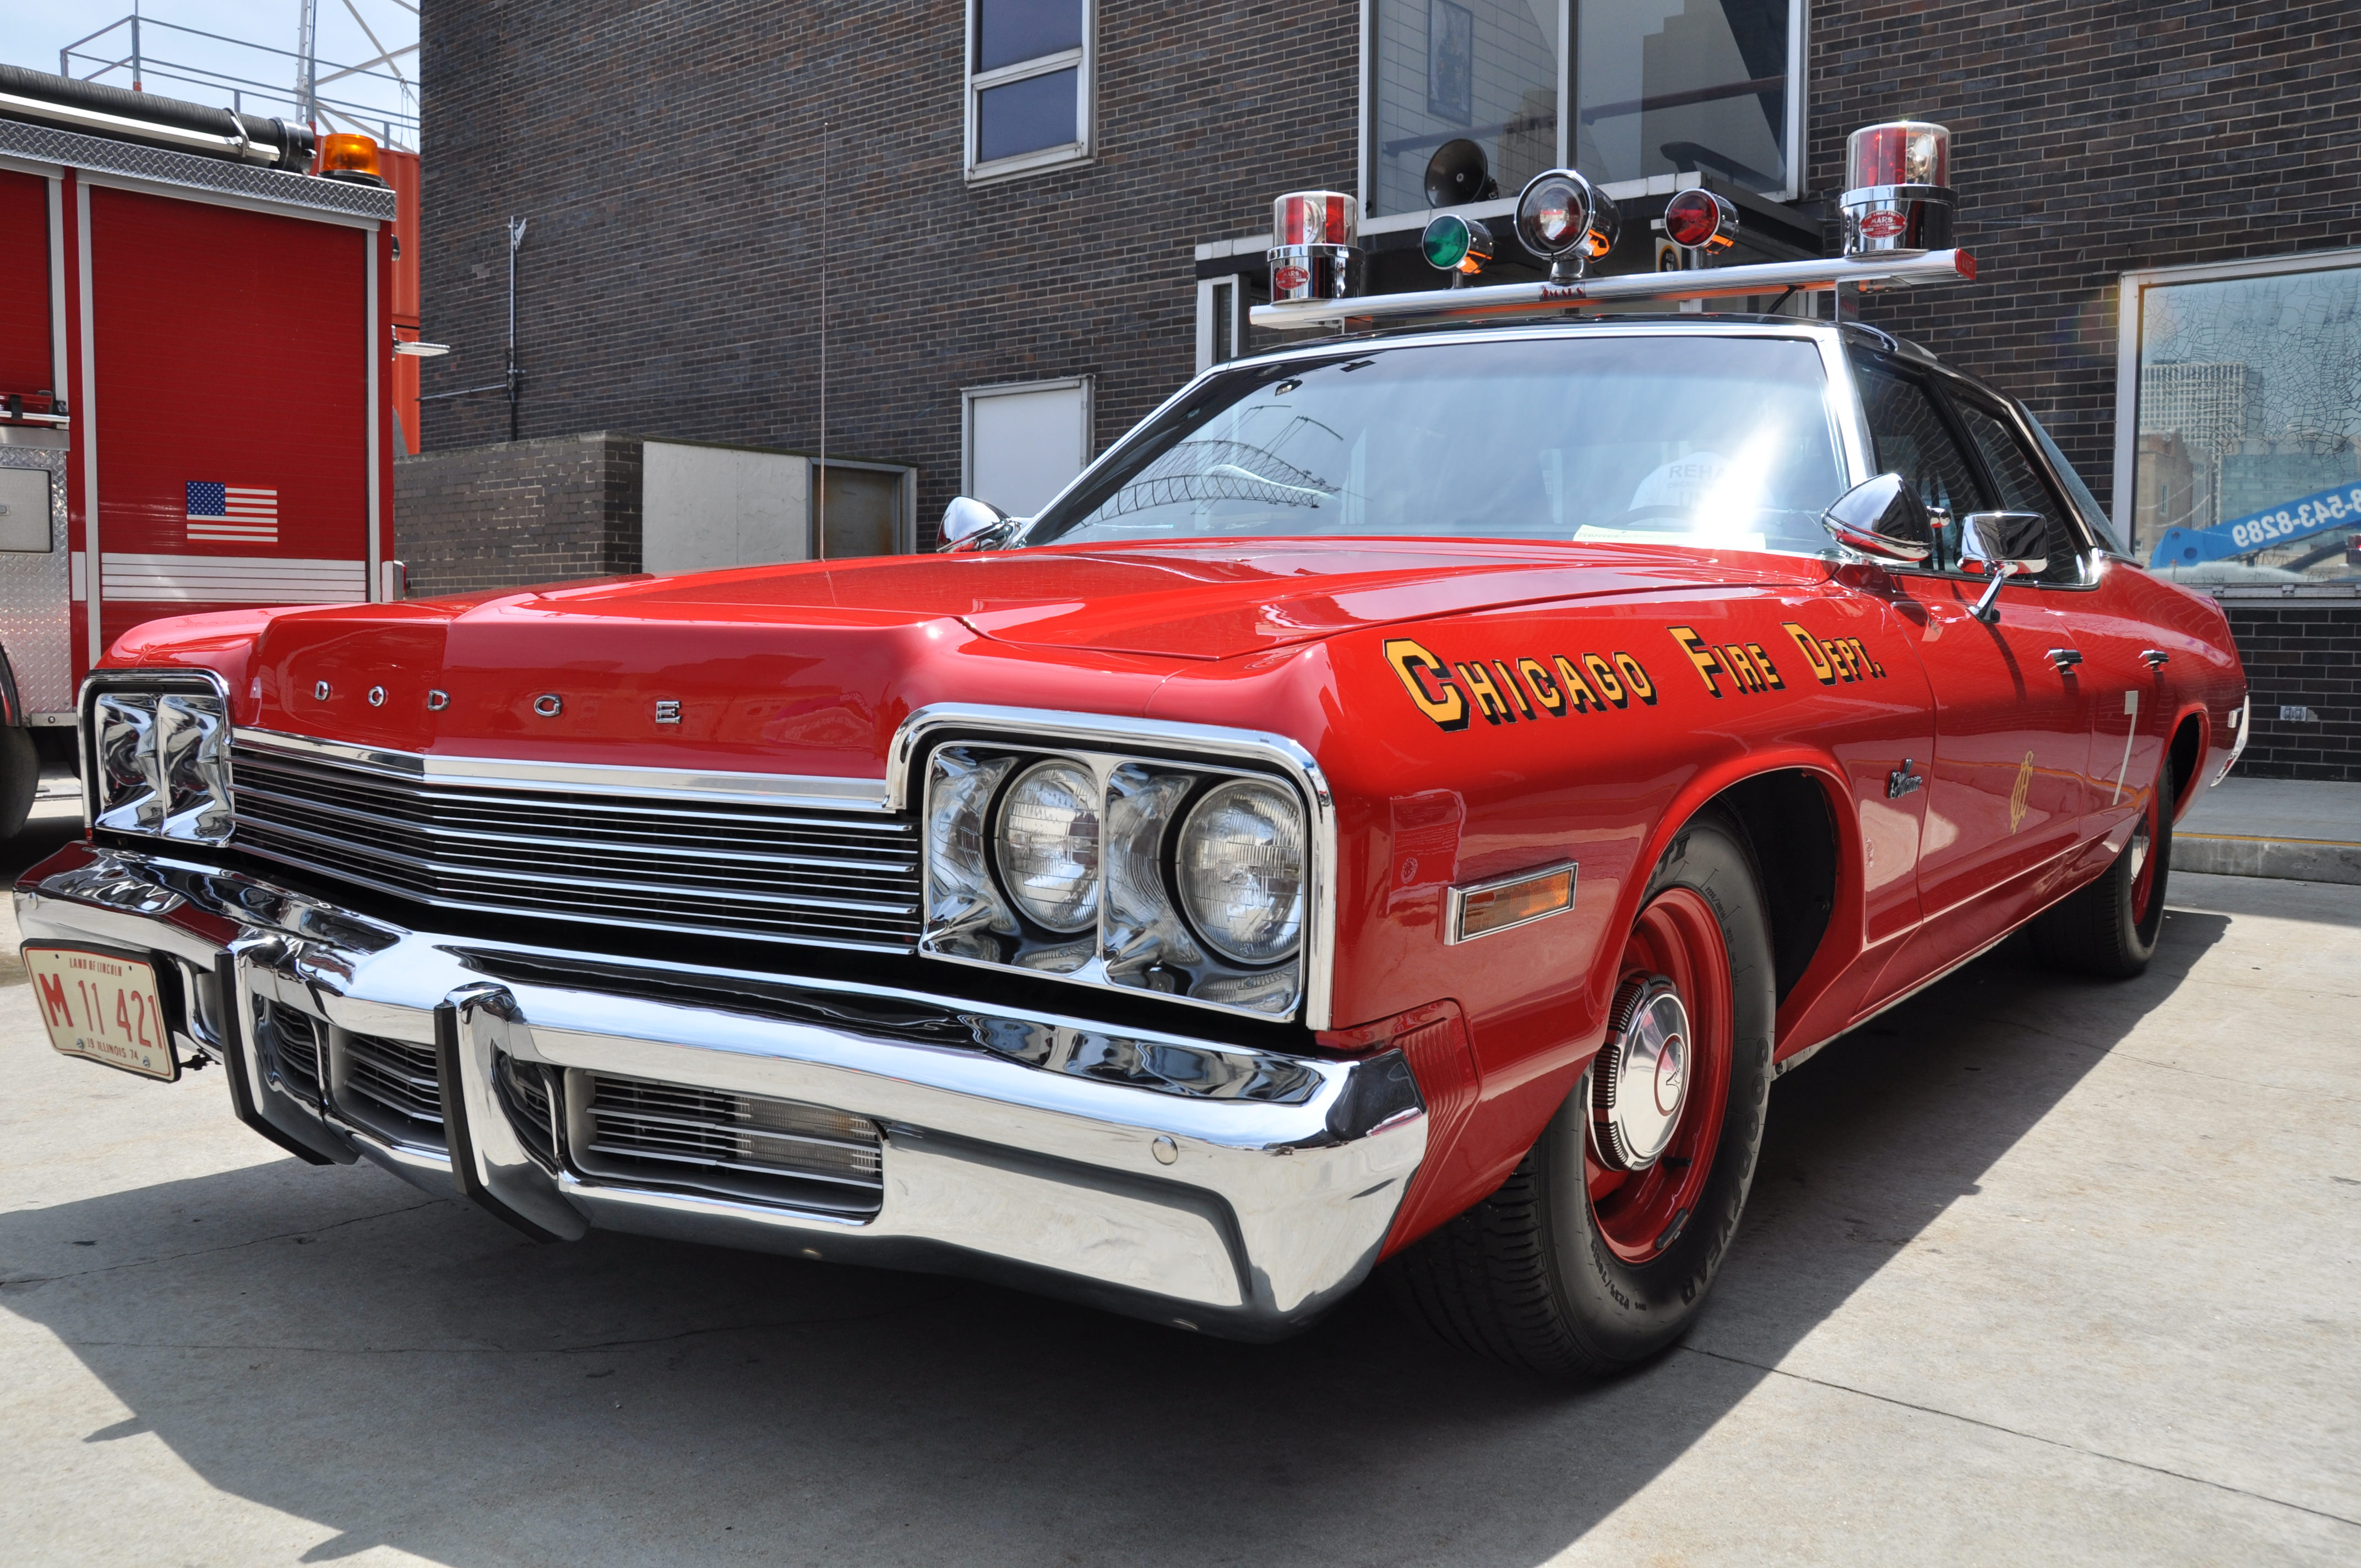 Day 185: 1974 Dodge Monaco | Showcasing Chicago One Image at a Time